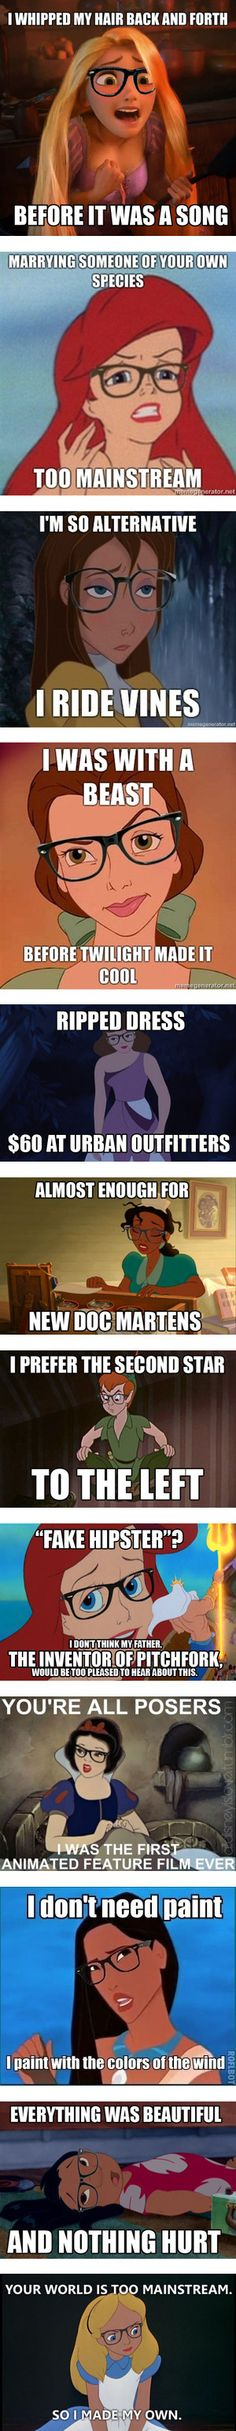 """Hipster Disney Memes"" by bananafrog ❤ liked on Polyvore"